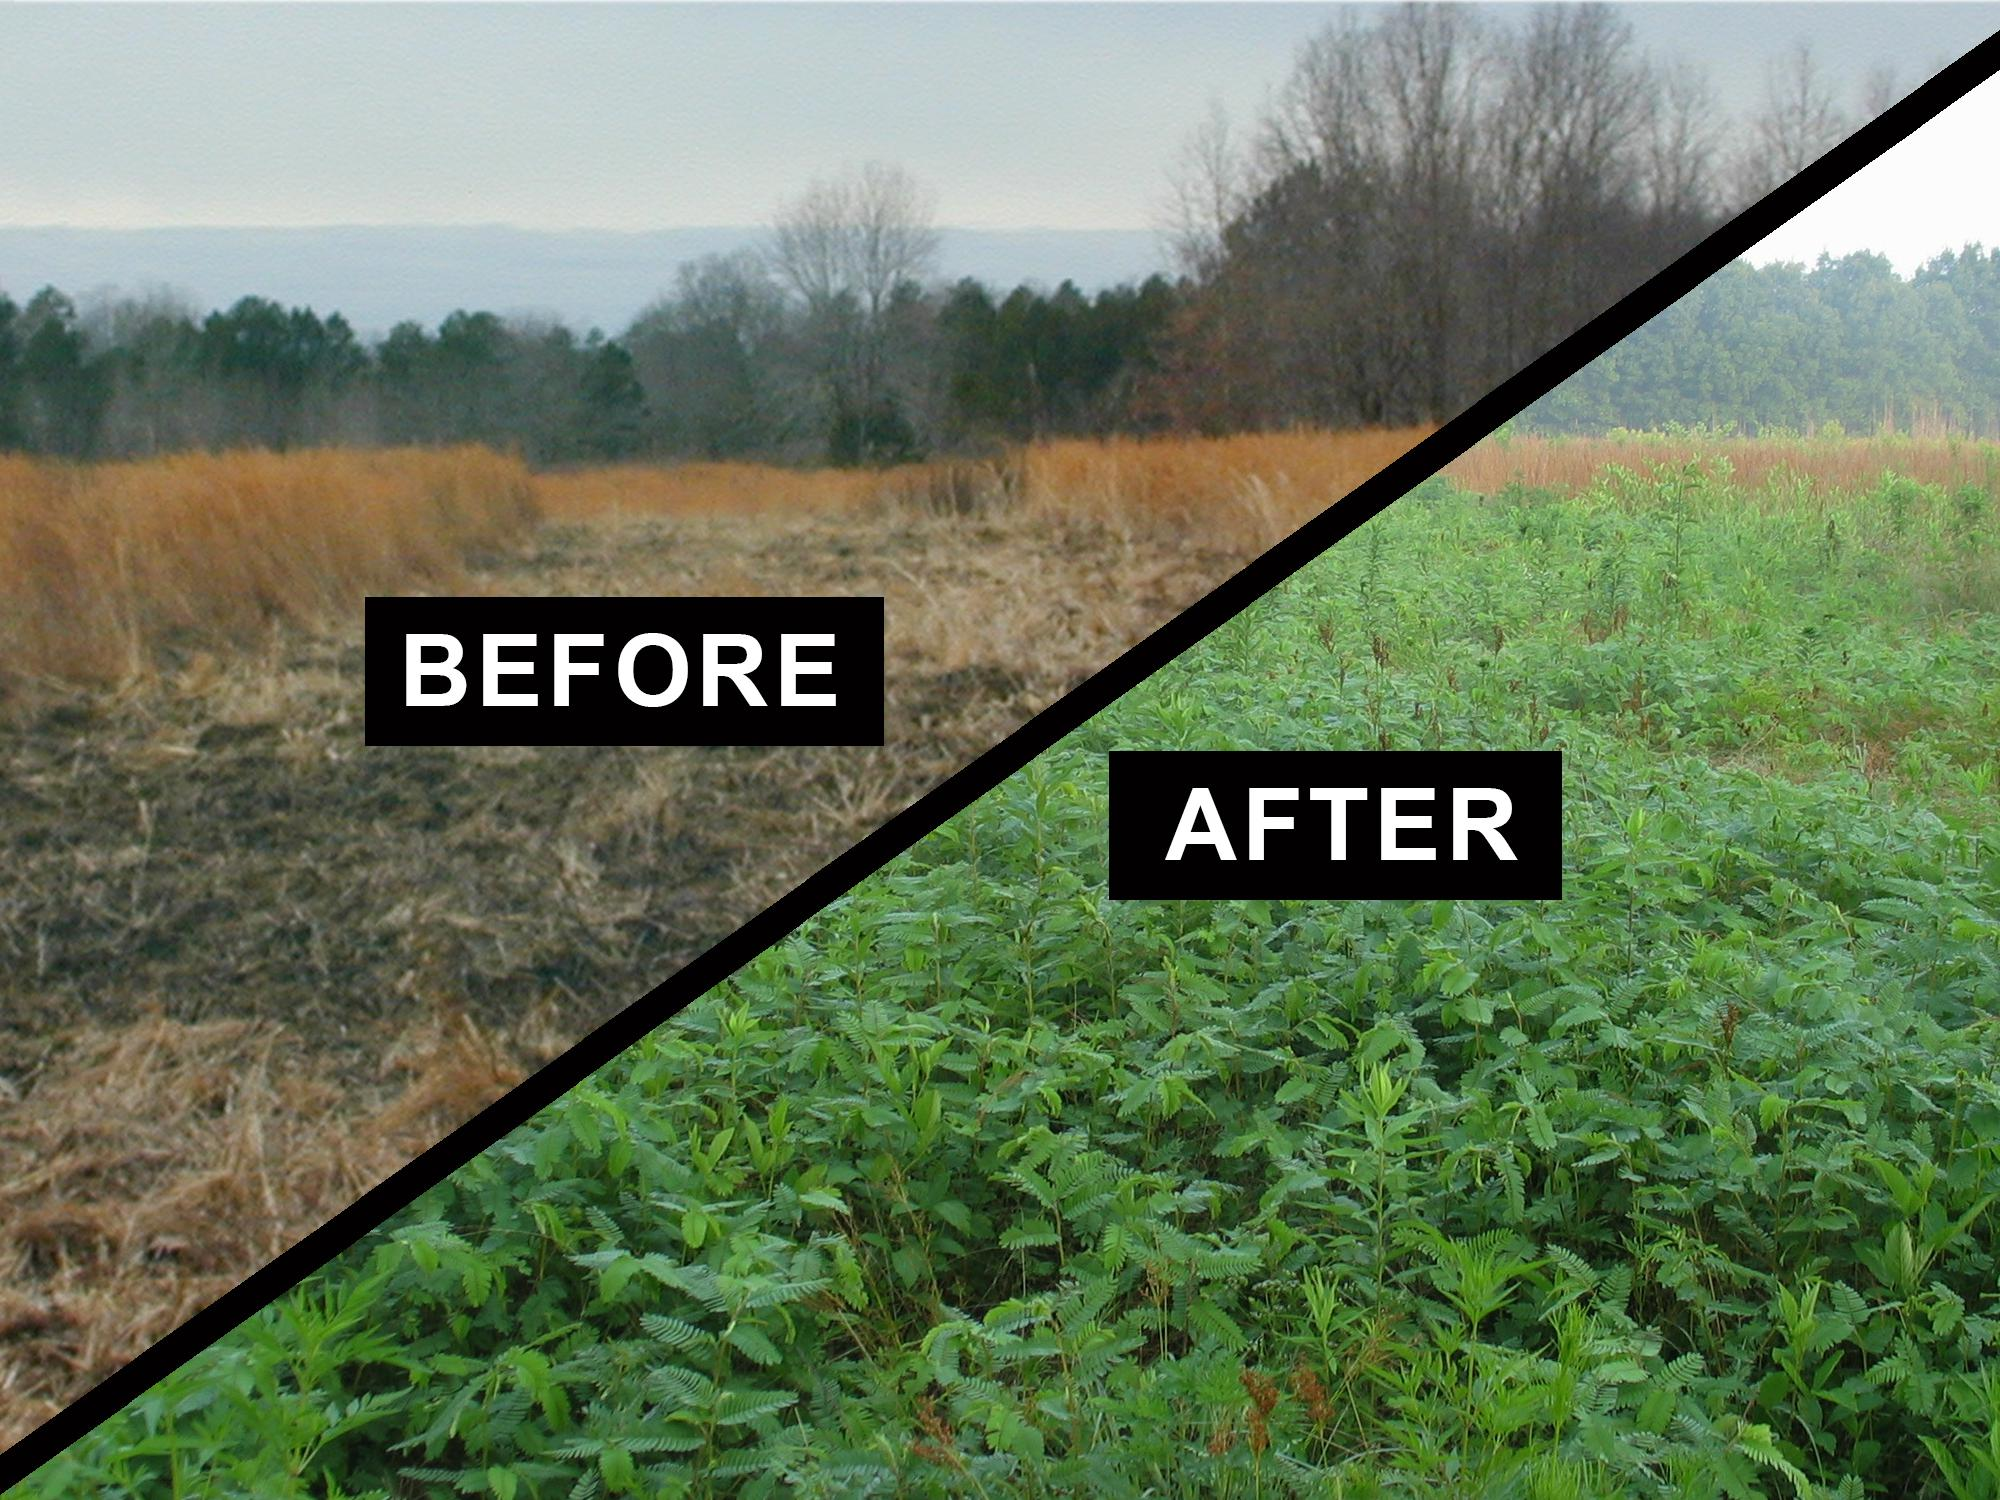 The first photo shows ground that has been disked in the middle of dormant grasses. The second photo shows the same location with green plants growing beside grasses that are not as lush.